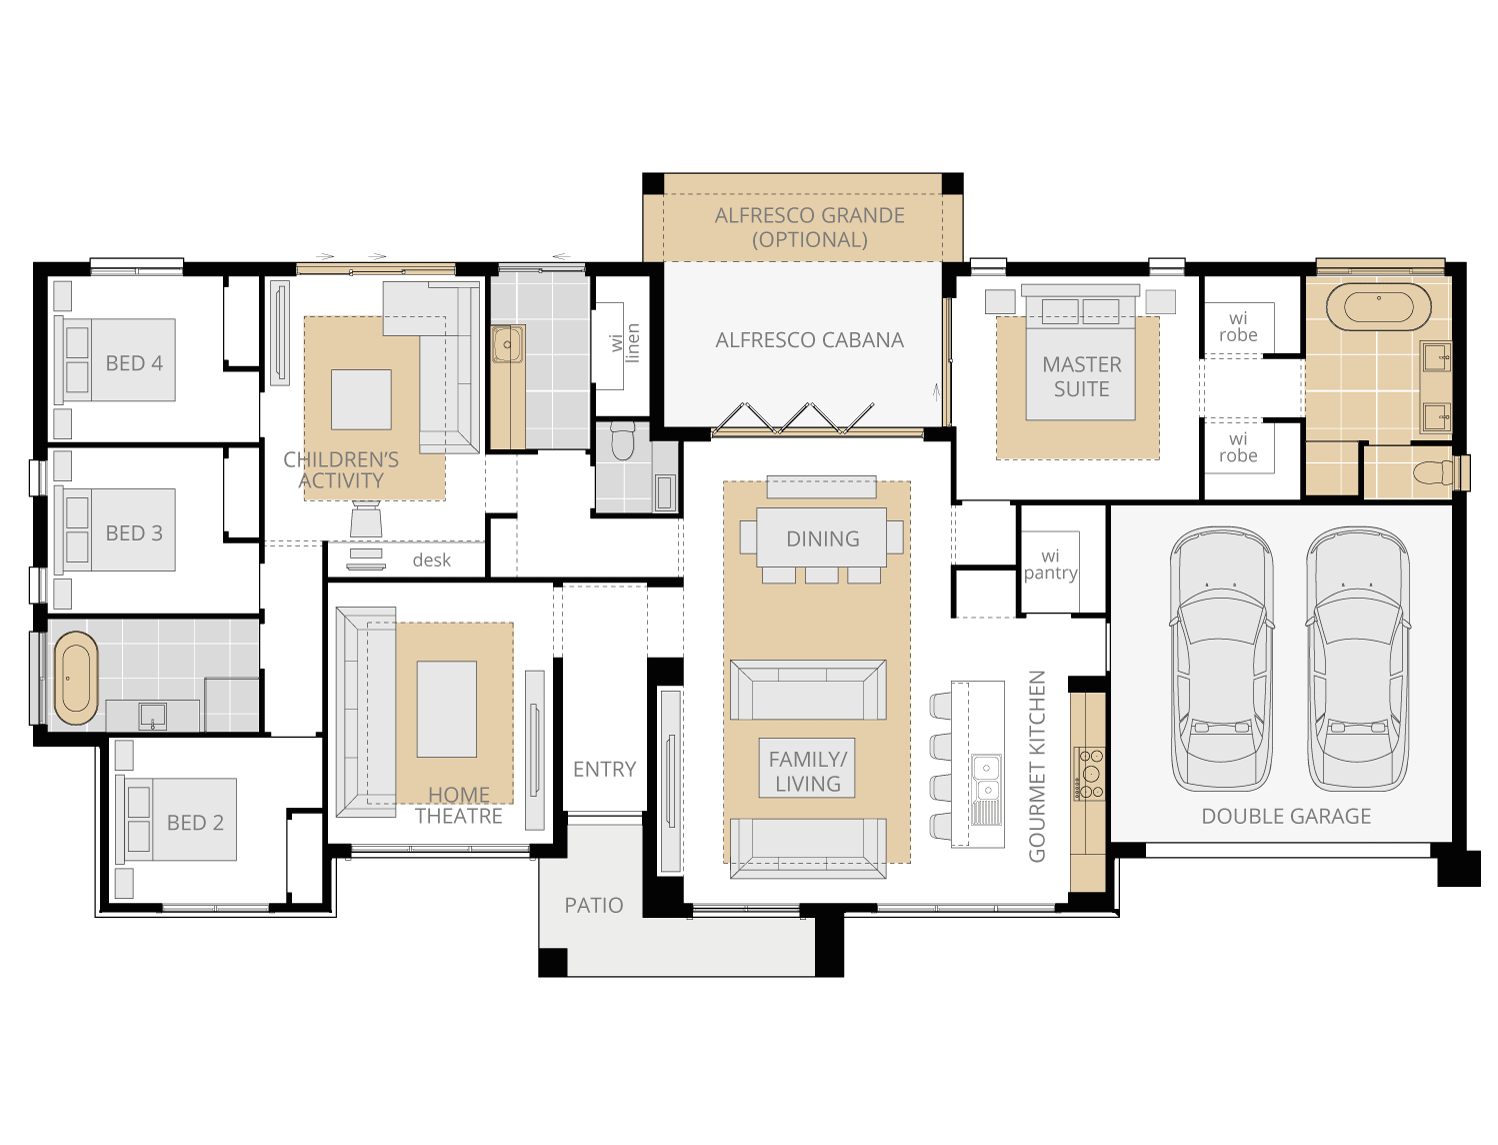 Cumbria upgrade floorplan